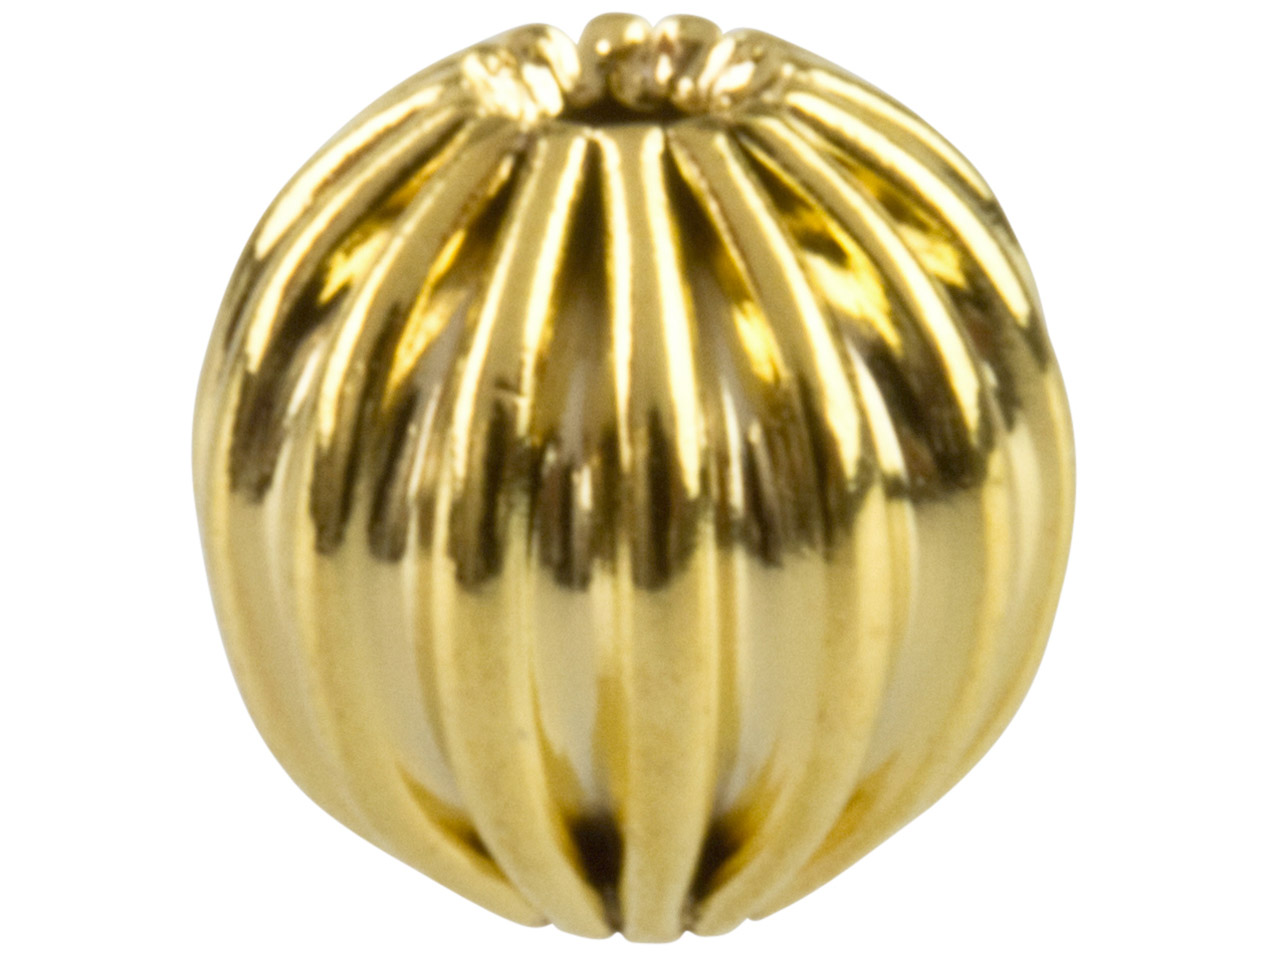 Gold Plated Corrugated Round Beads 6mm, 2 Hole, Pack of 25